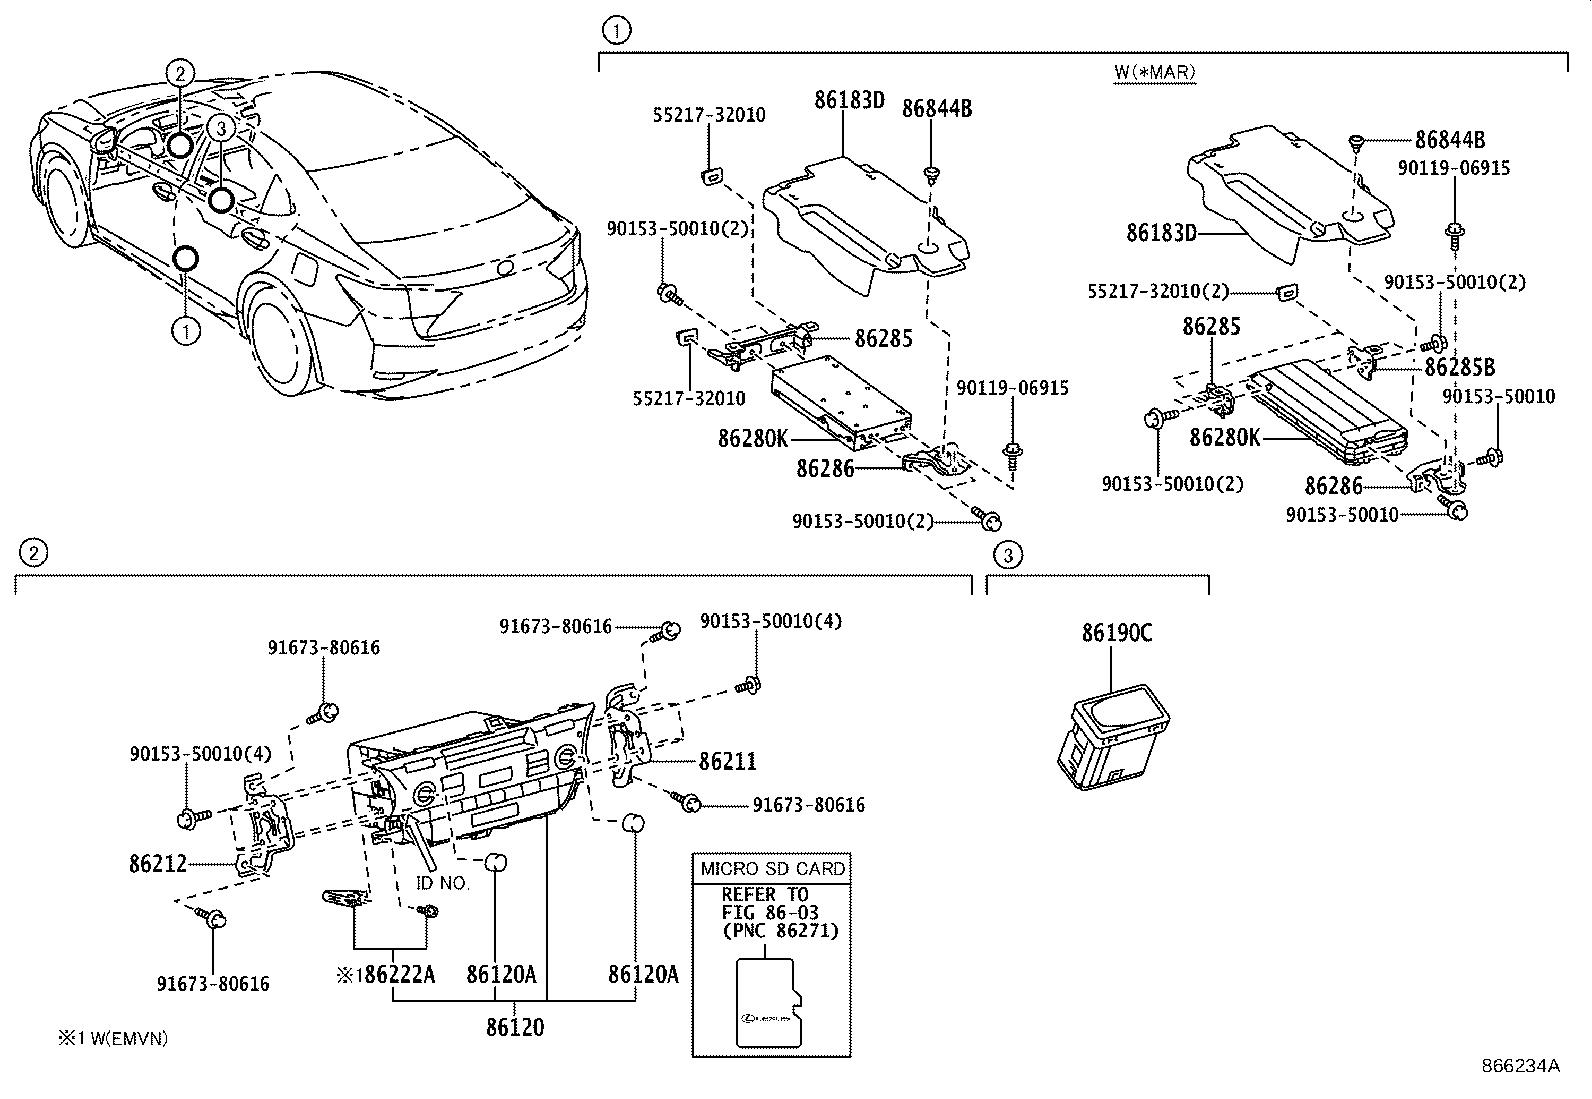 Lexus ES 350 Amplifier assembly, stereo component. Mar